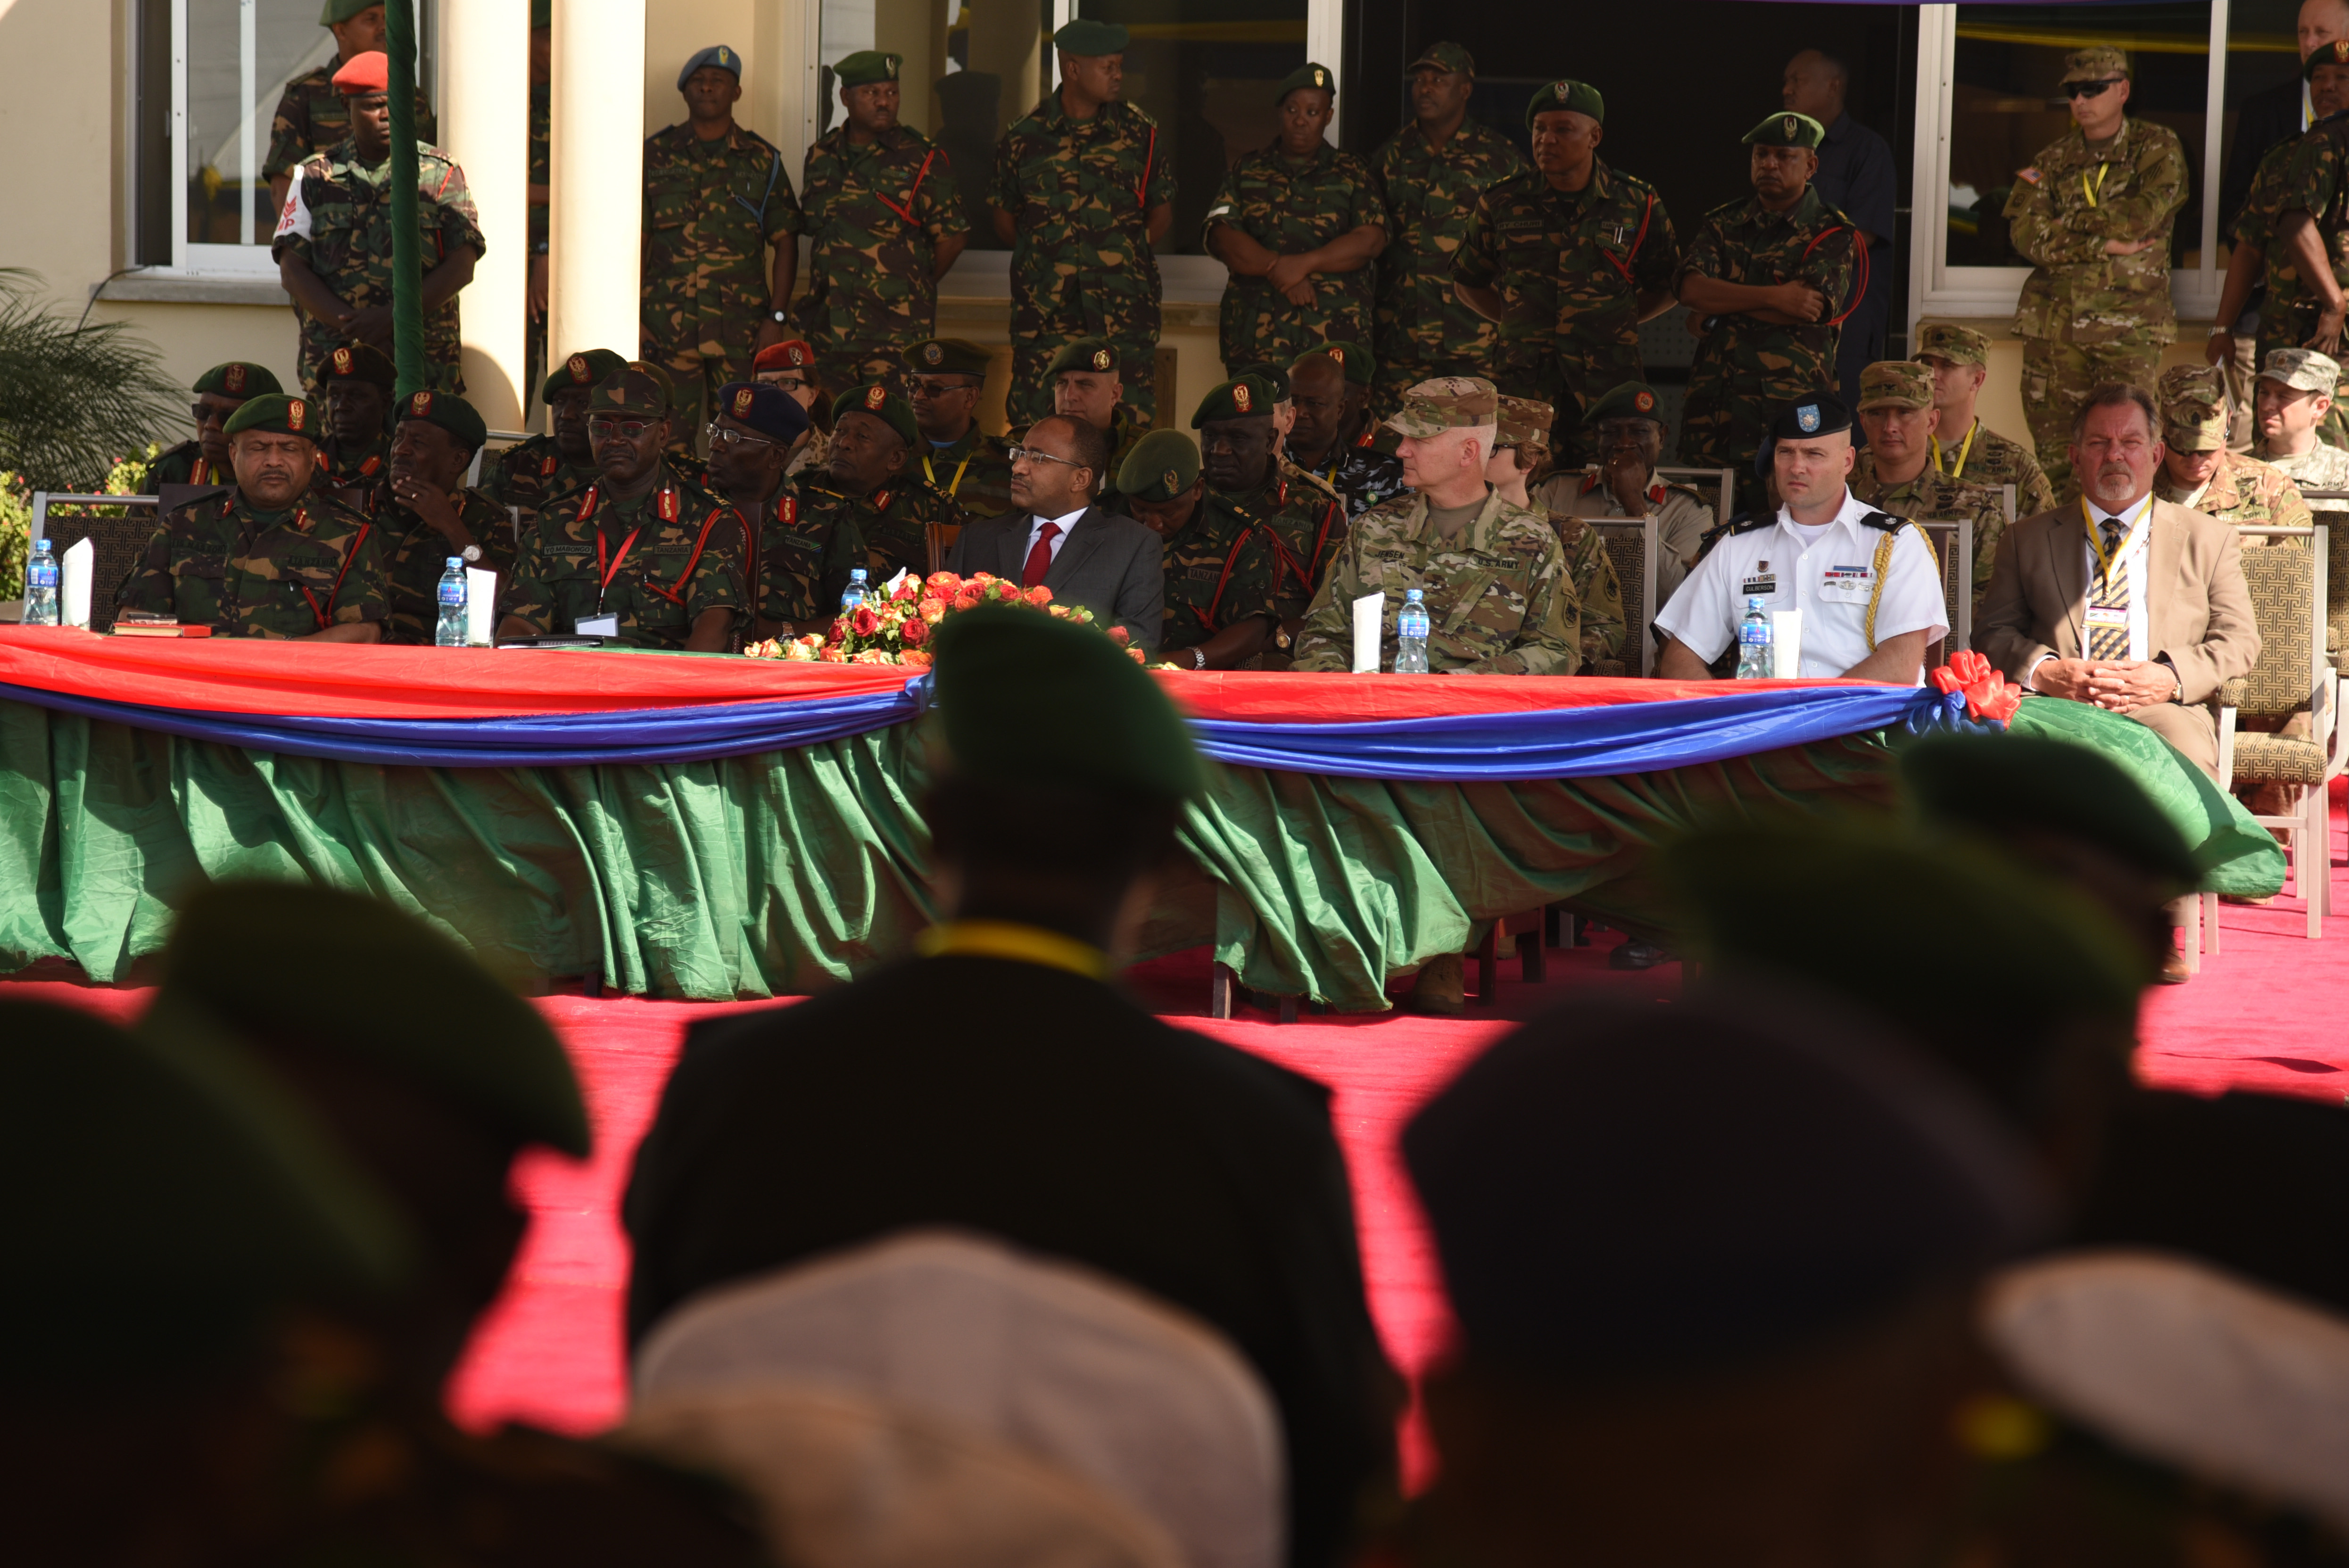 DAR ES SALAAM, Tanzania – Senior military leaders from the Tanzanian and U.S. militaries, alongside Hussein Ali Mwinyi, Tanzanian Minister of Defense and National Service, preside over the opening ceremony for exercise Eastern Accord 2016 at the Tanzanian Peacekeeping Training Centre, July 11, 2016, Dar es Salaam, Tanzania. EA16 is an annual, combined, joint military exercise that brings together partner nations to practice and demonstrate proficiency in conducting peacekeeping operations. (U.S. Air Force photo by Staff Sgt. Tiffany DeNault)